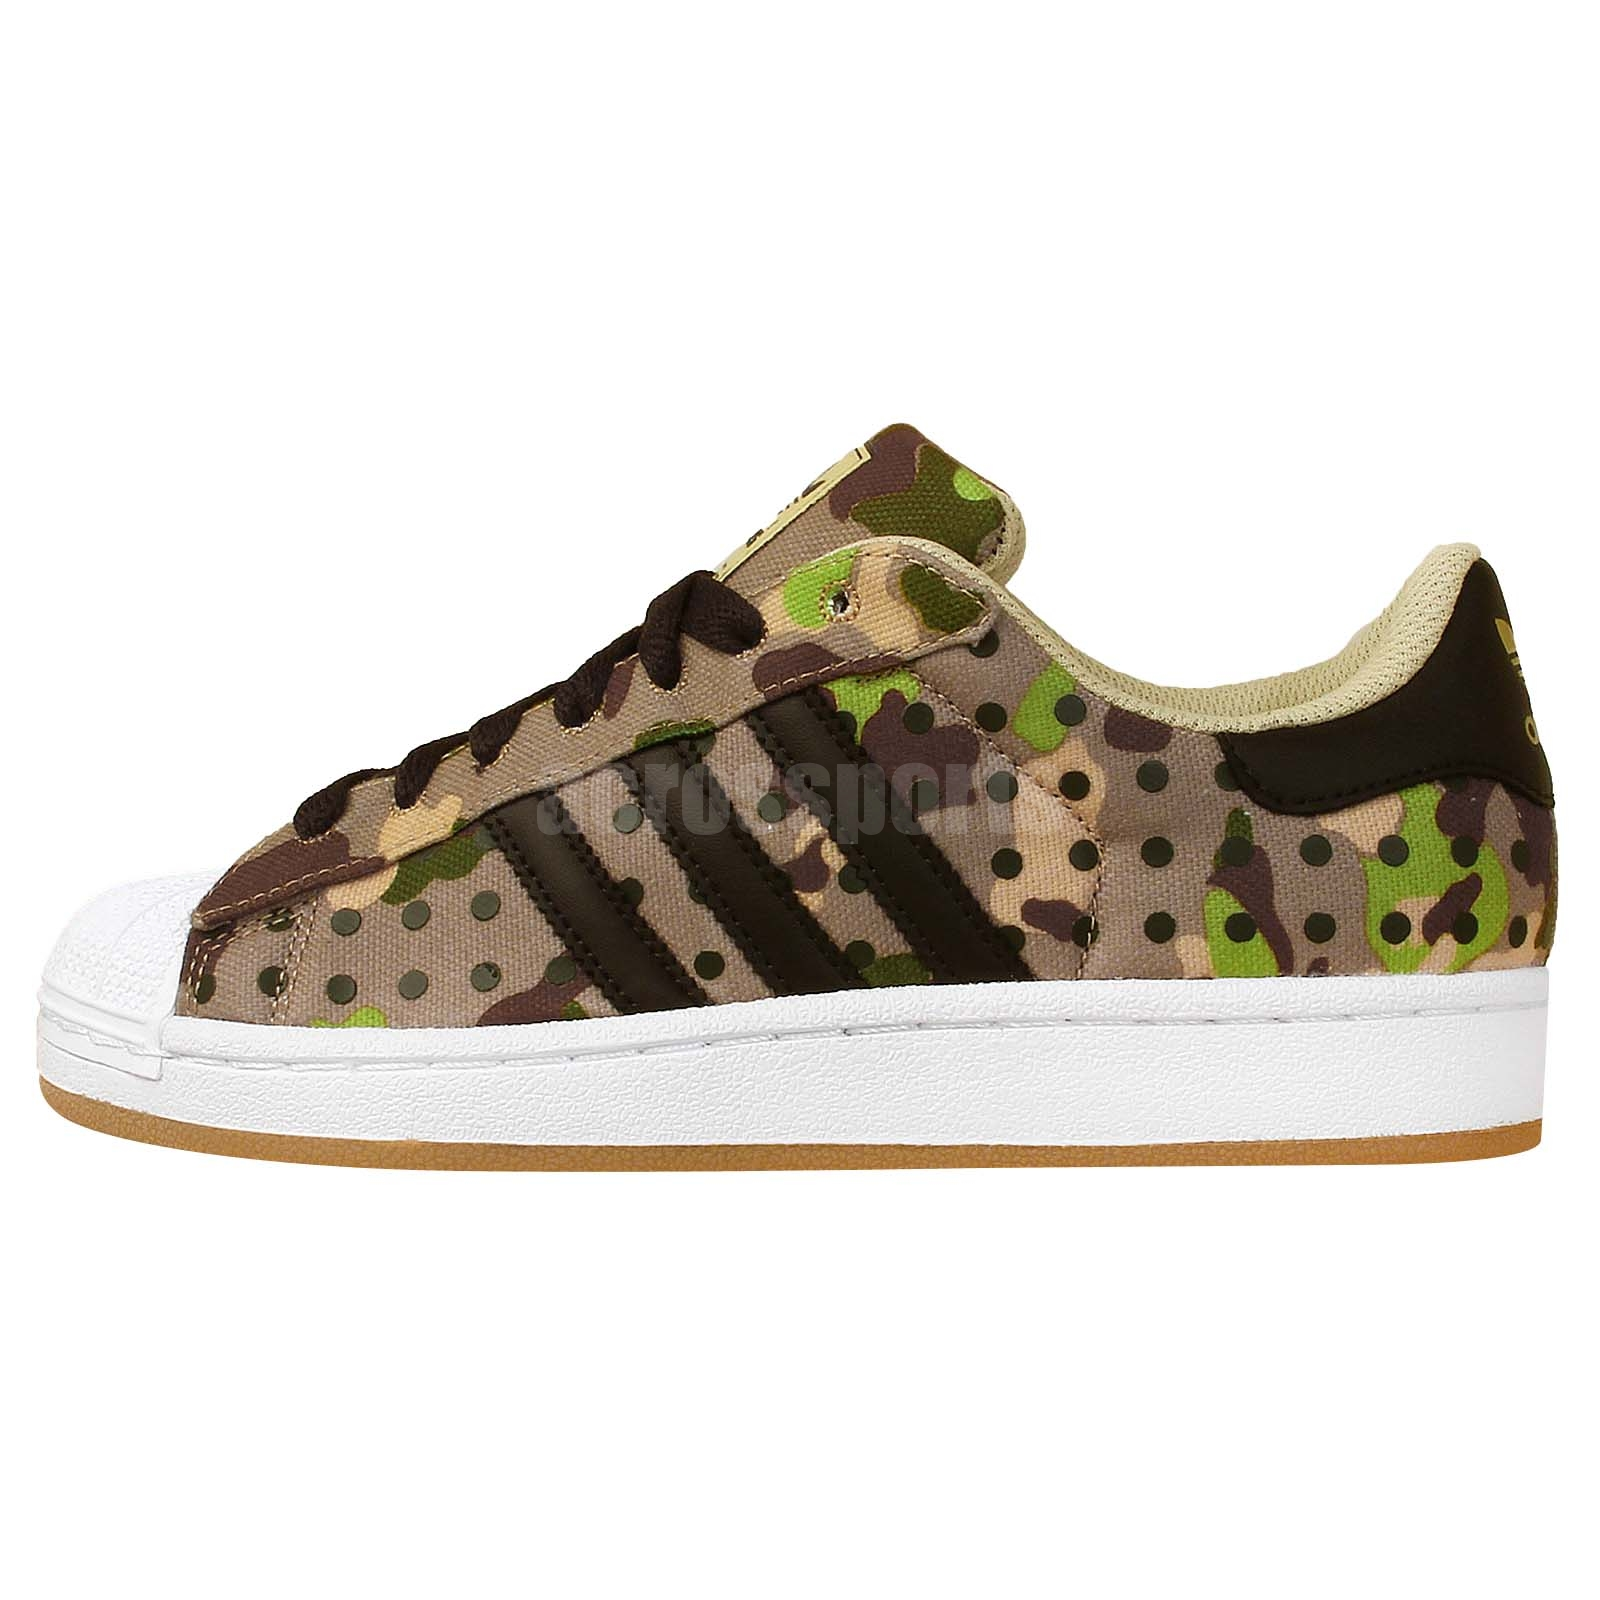 adidas superstar ii camouflage camo polka dot mens casual. Black Bedroom Furniture Sets. Home Design Ideas